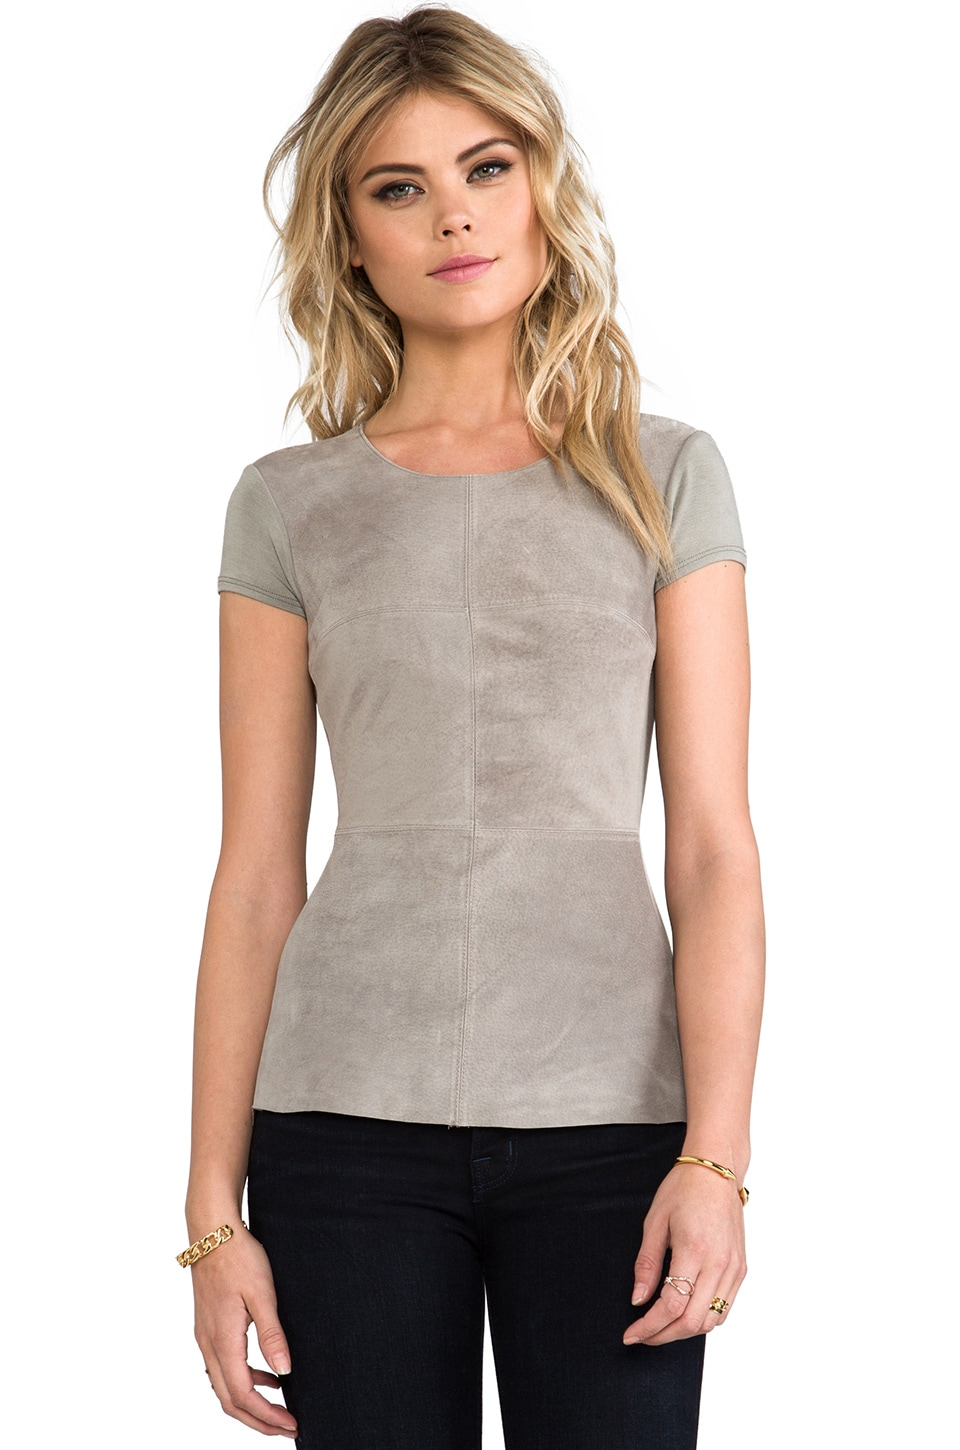 Bailey 44 Chick Flick Top in Elephant